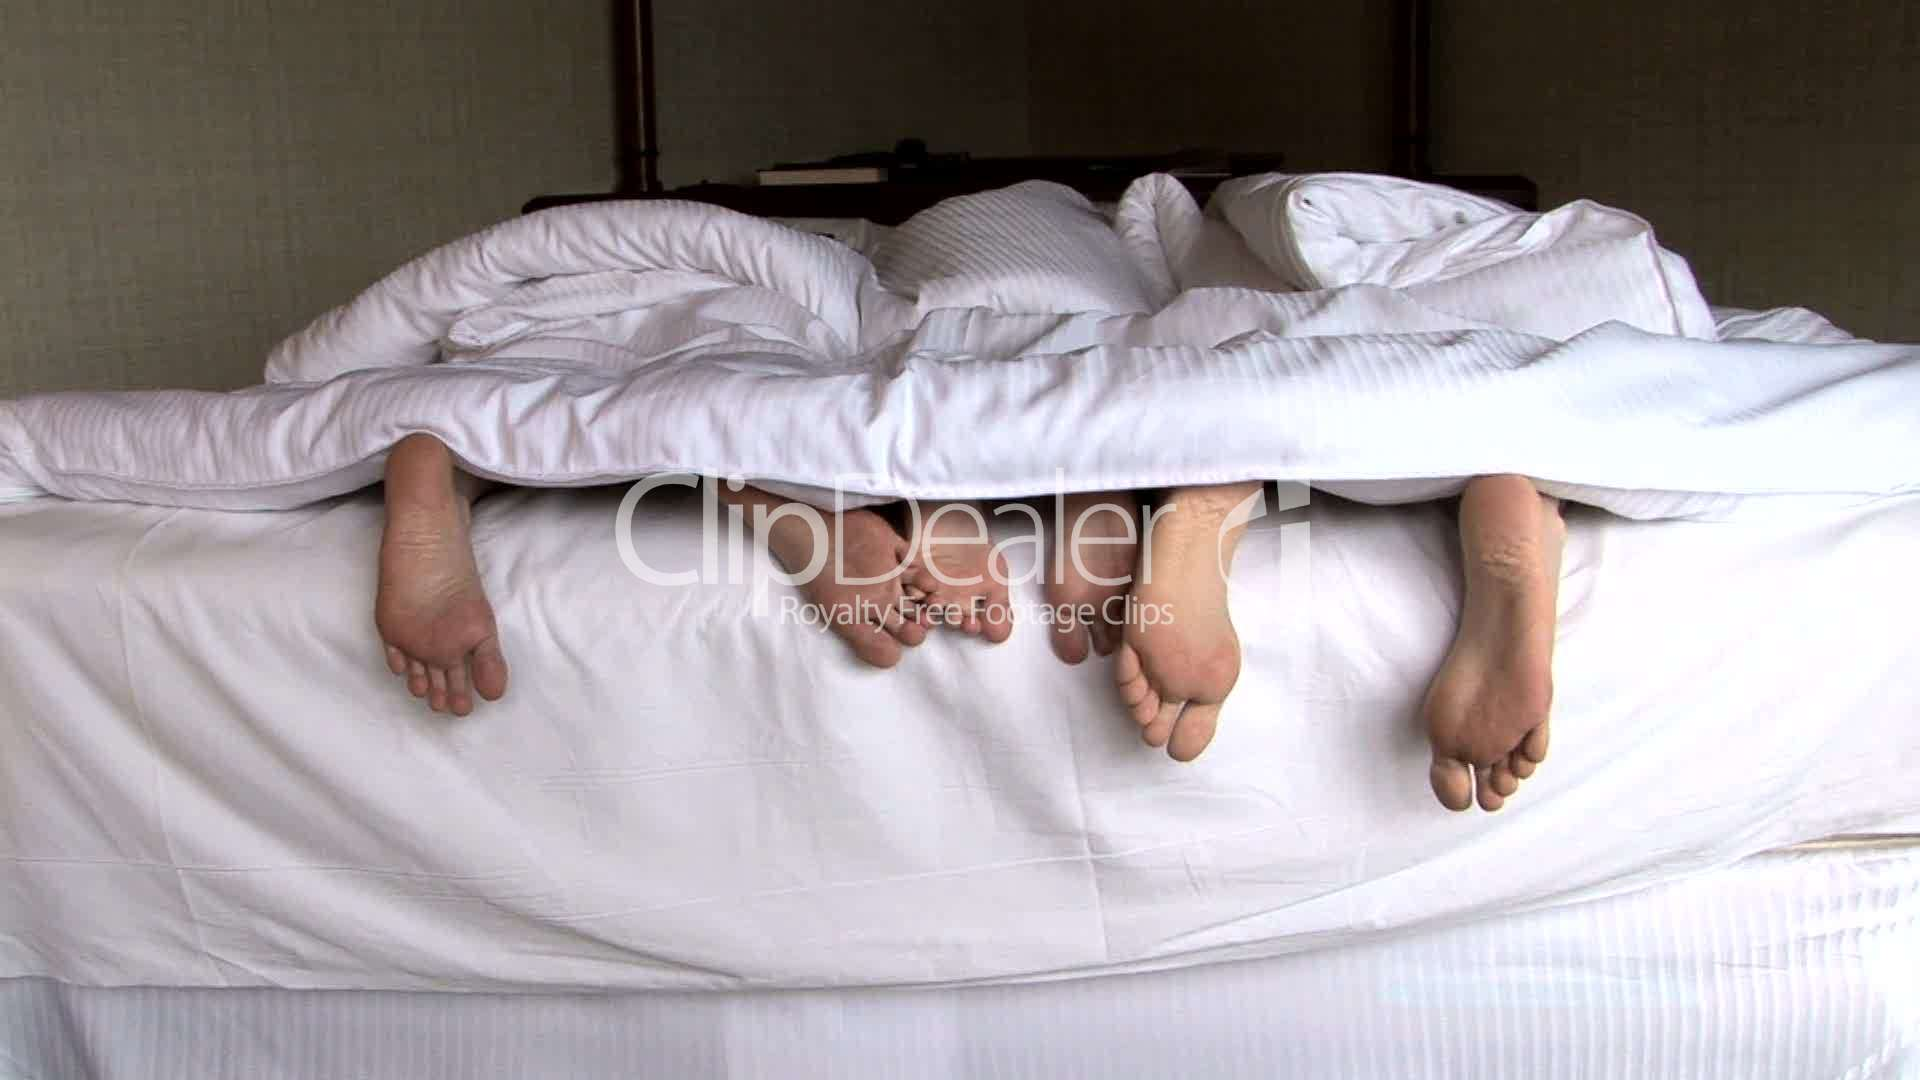 Family Feet In Bed Royalty Free Video And Stock Footage